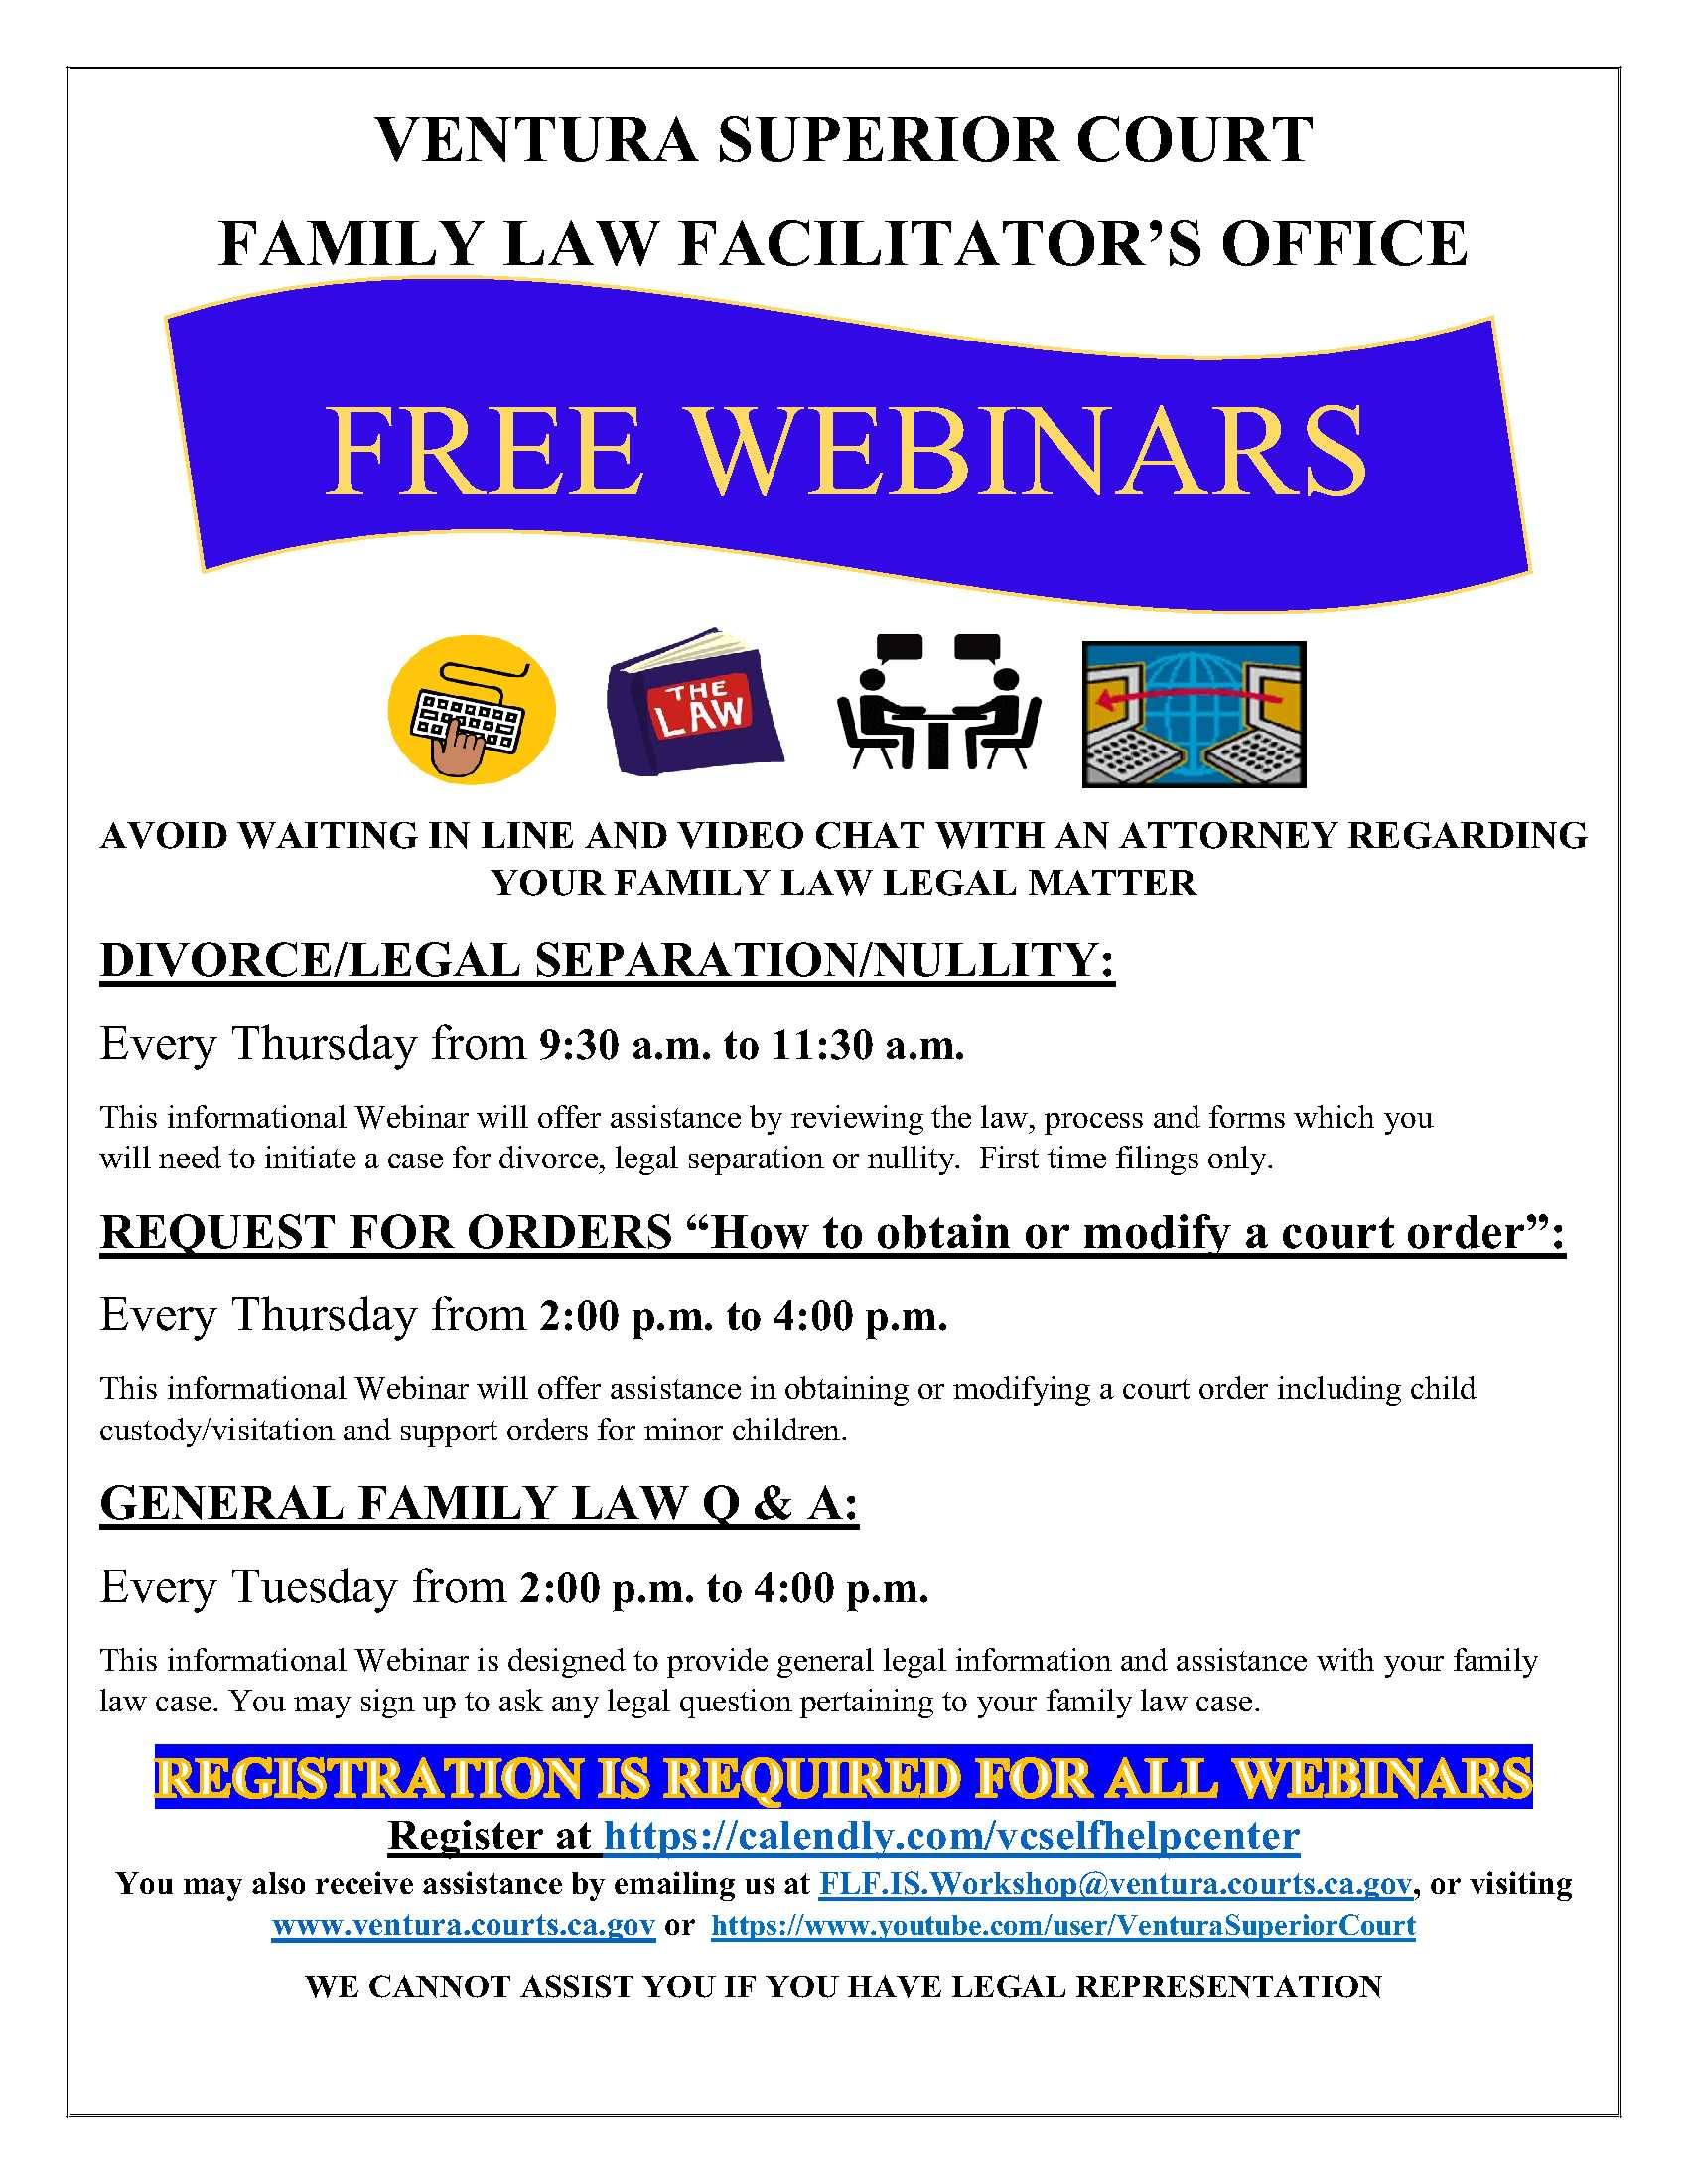 Ventura Superior Court Family Law Facilitators Office Free Webinars